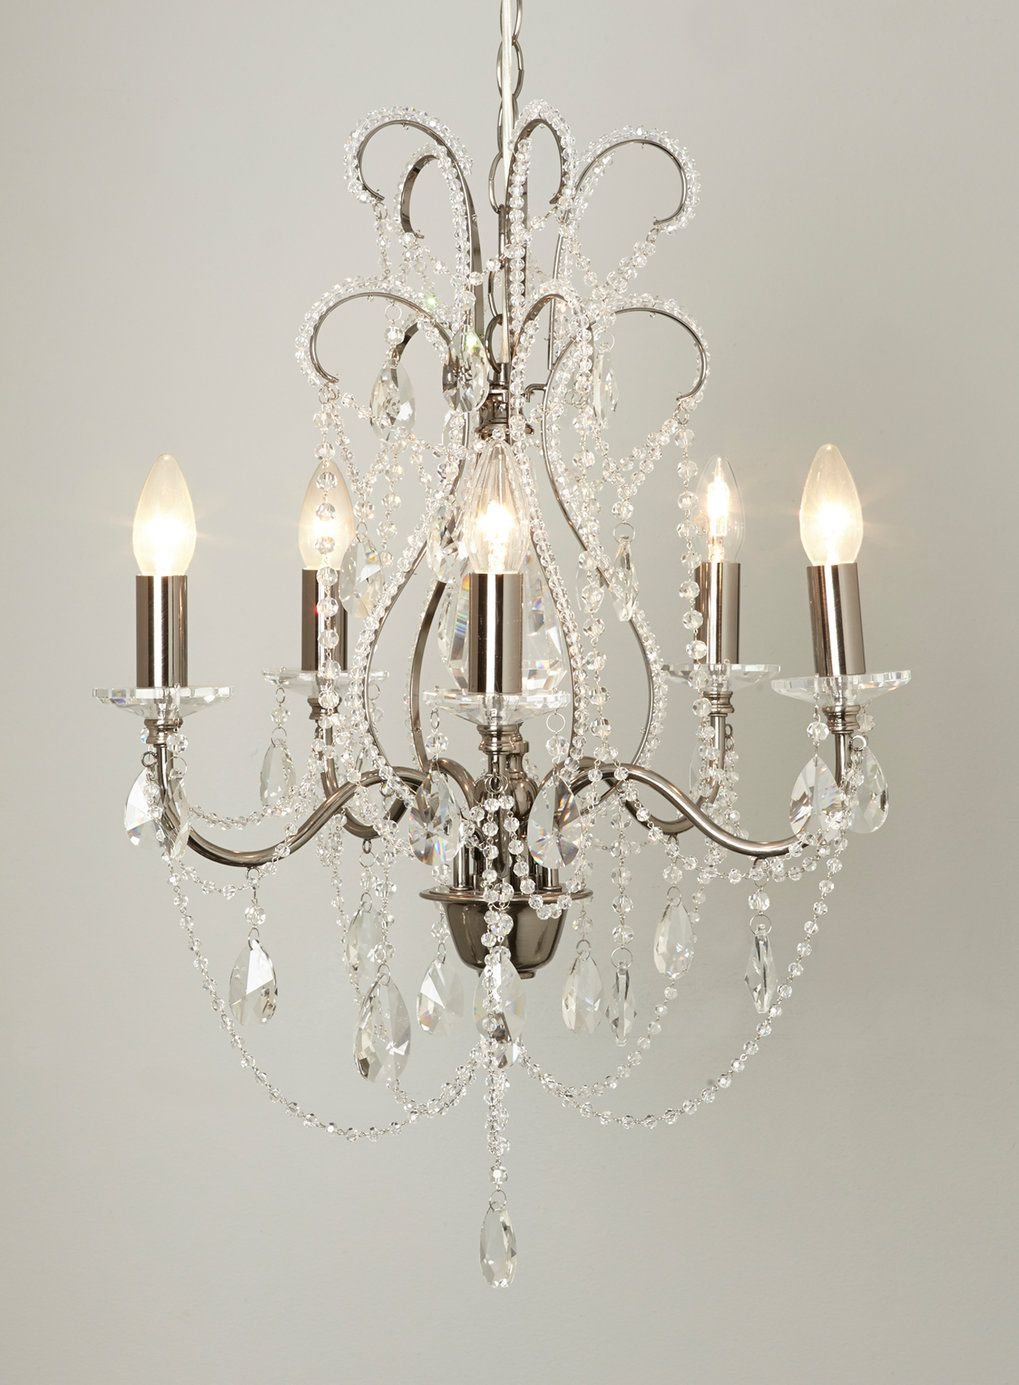 Faith chandelier | Lounge | Pinterest | British, Bhs and Chandeliers